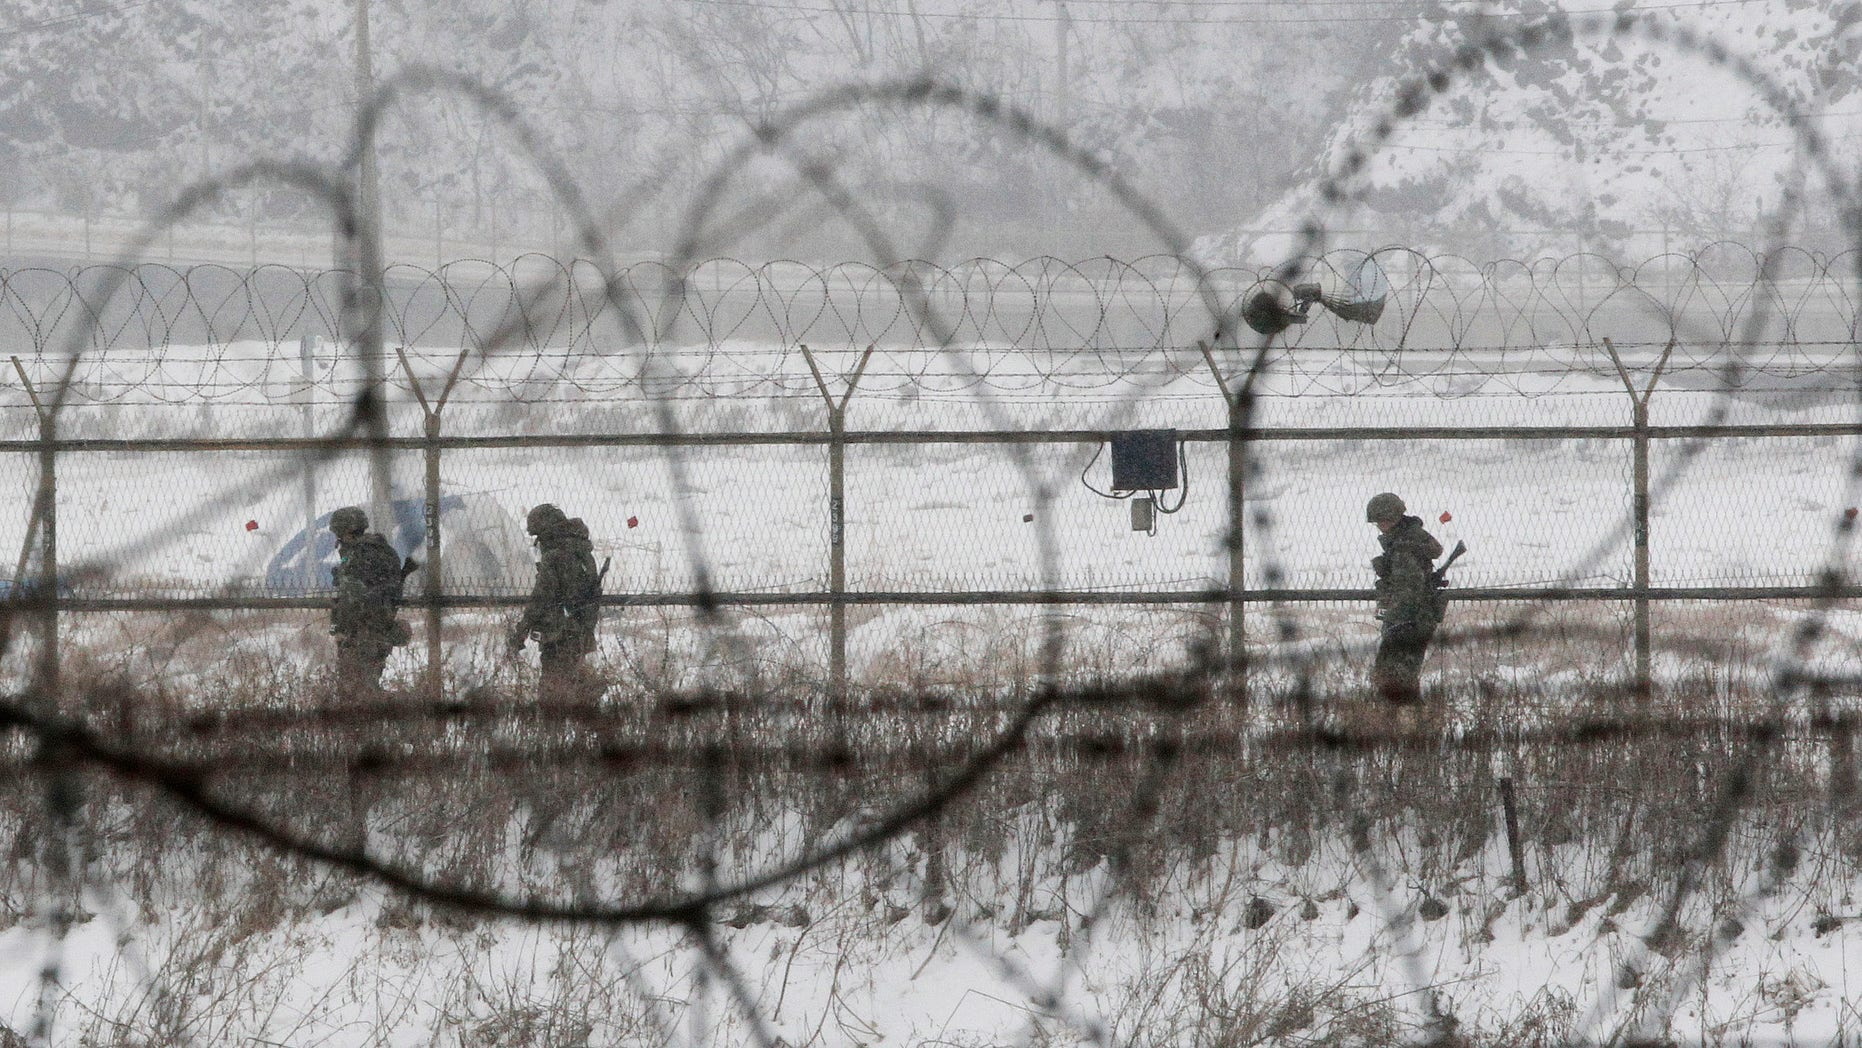 Feb. 12, 2013: South Korean army soldiers patrol along barbed-wire fences at the Imjingak Pavilion, near the demilitarized zone of Panmunjom, in Paju, South Korea.